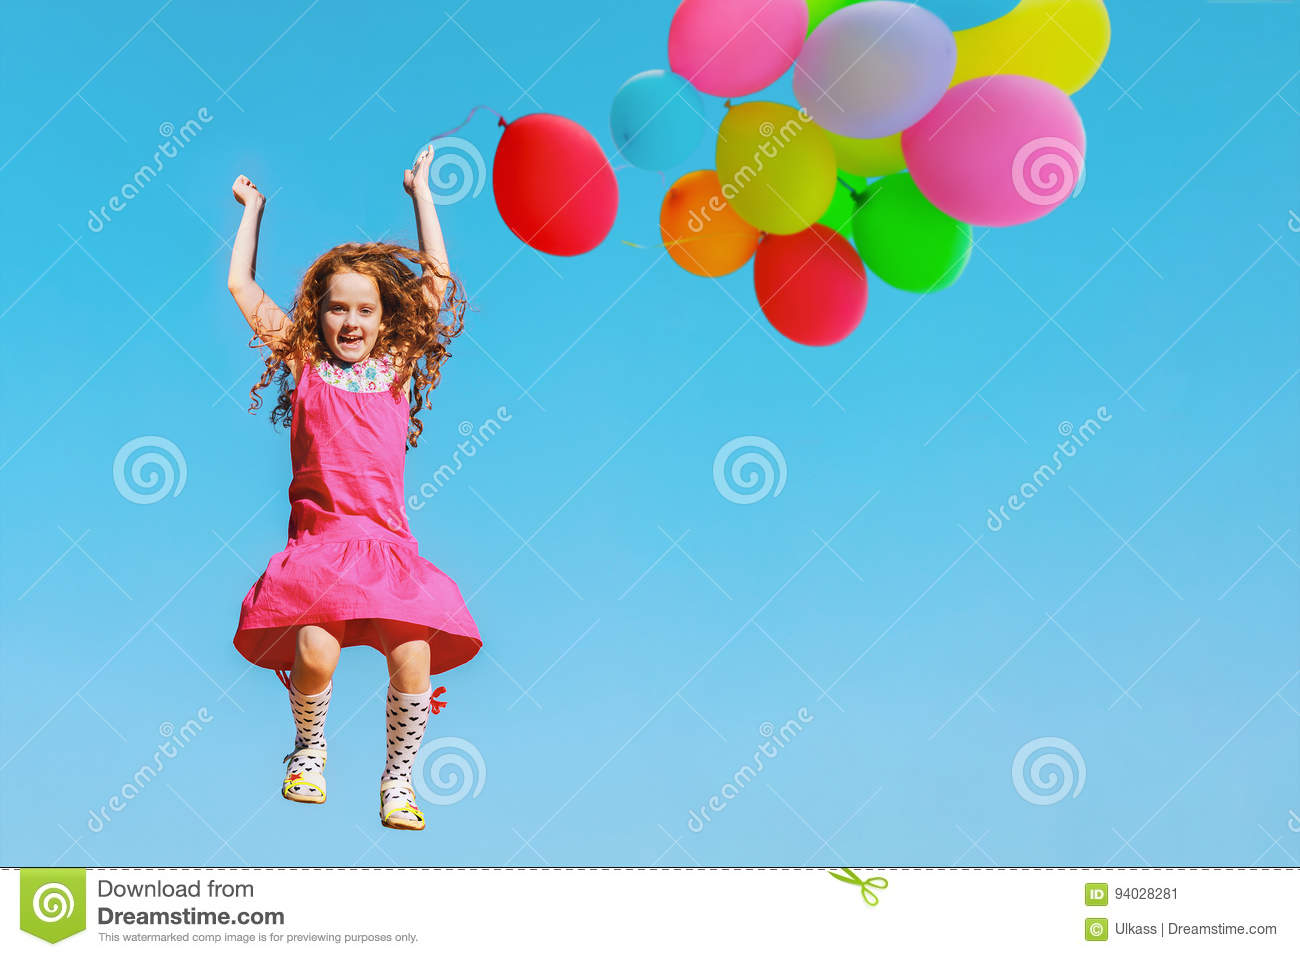 Little girl jumping or dancing in sky background. Healthy lifestyle, freedom, happy childhood concept.